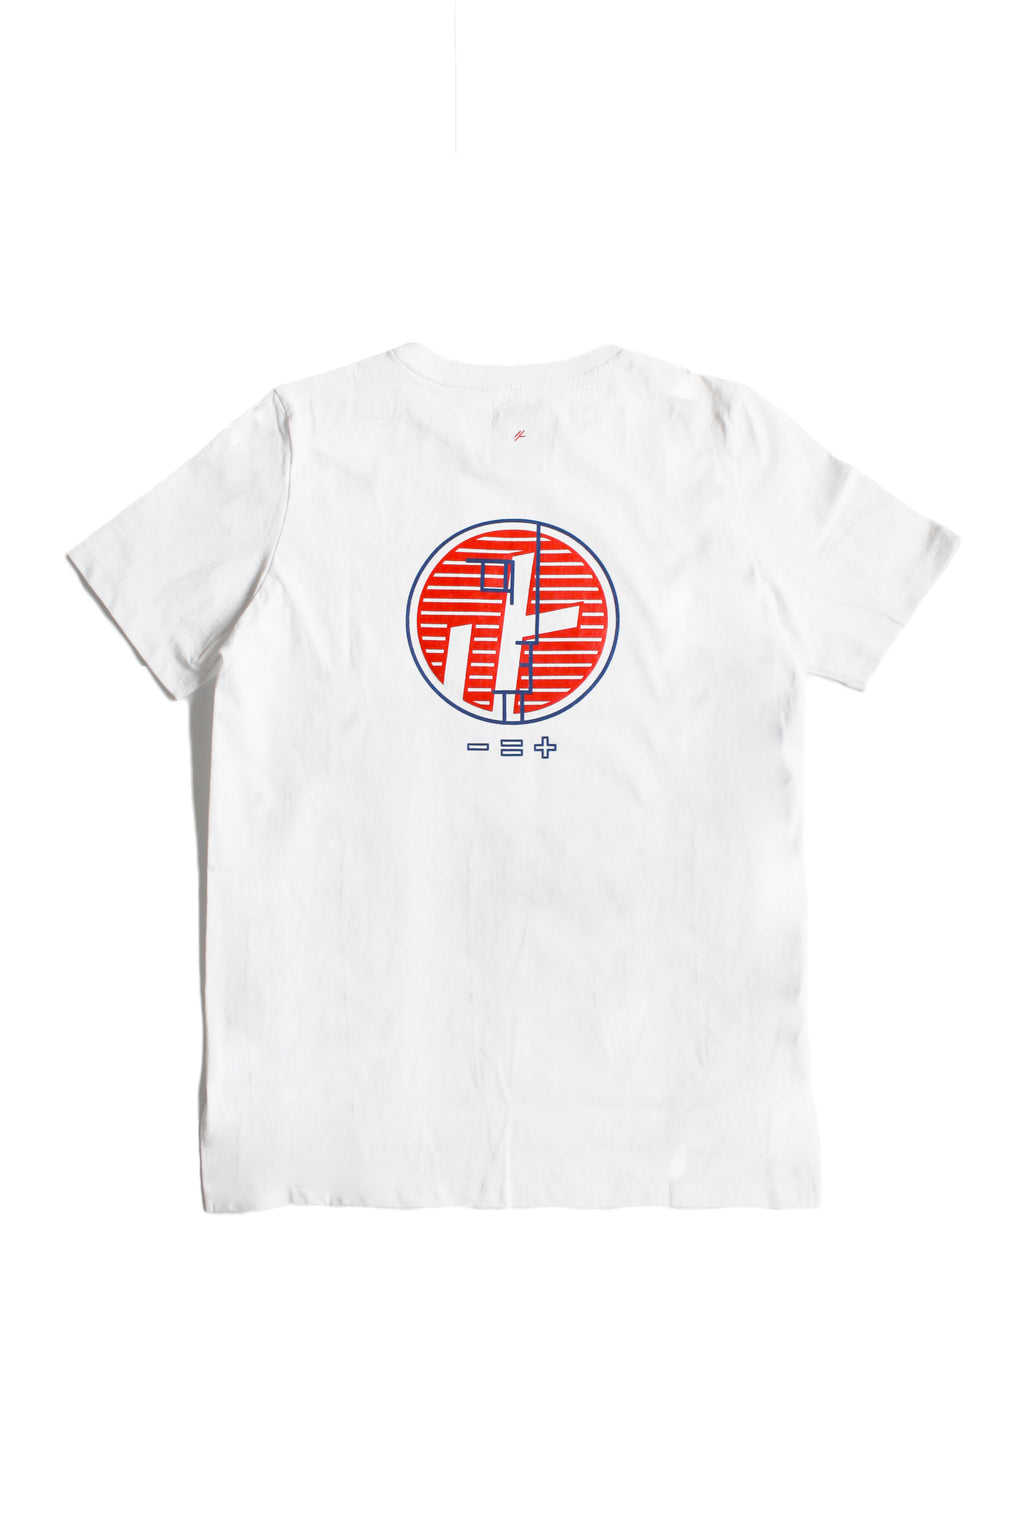 "2. ""FACE THE SUN"" White Tee"